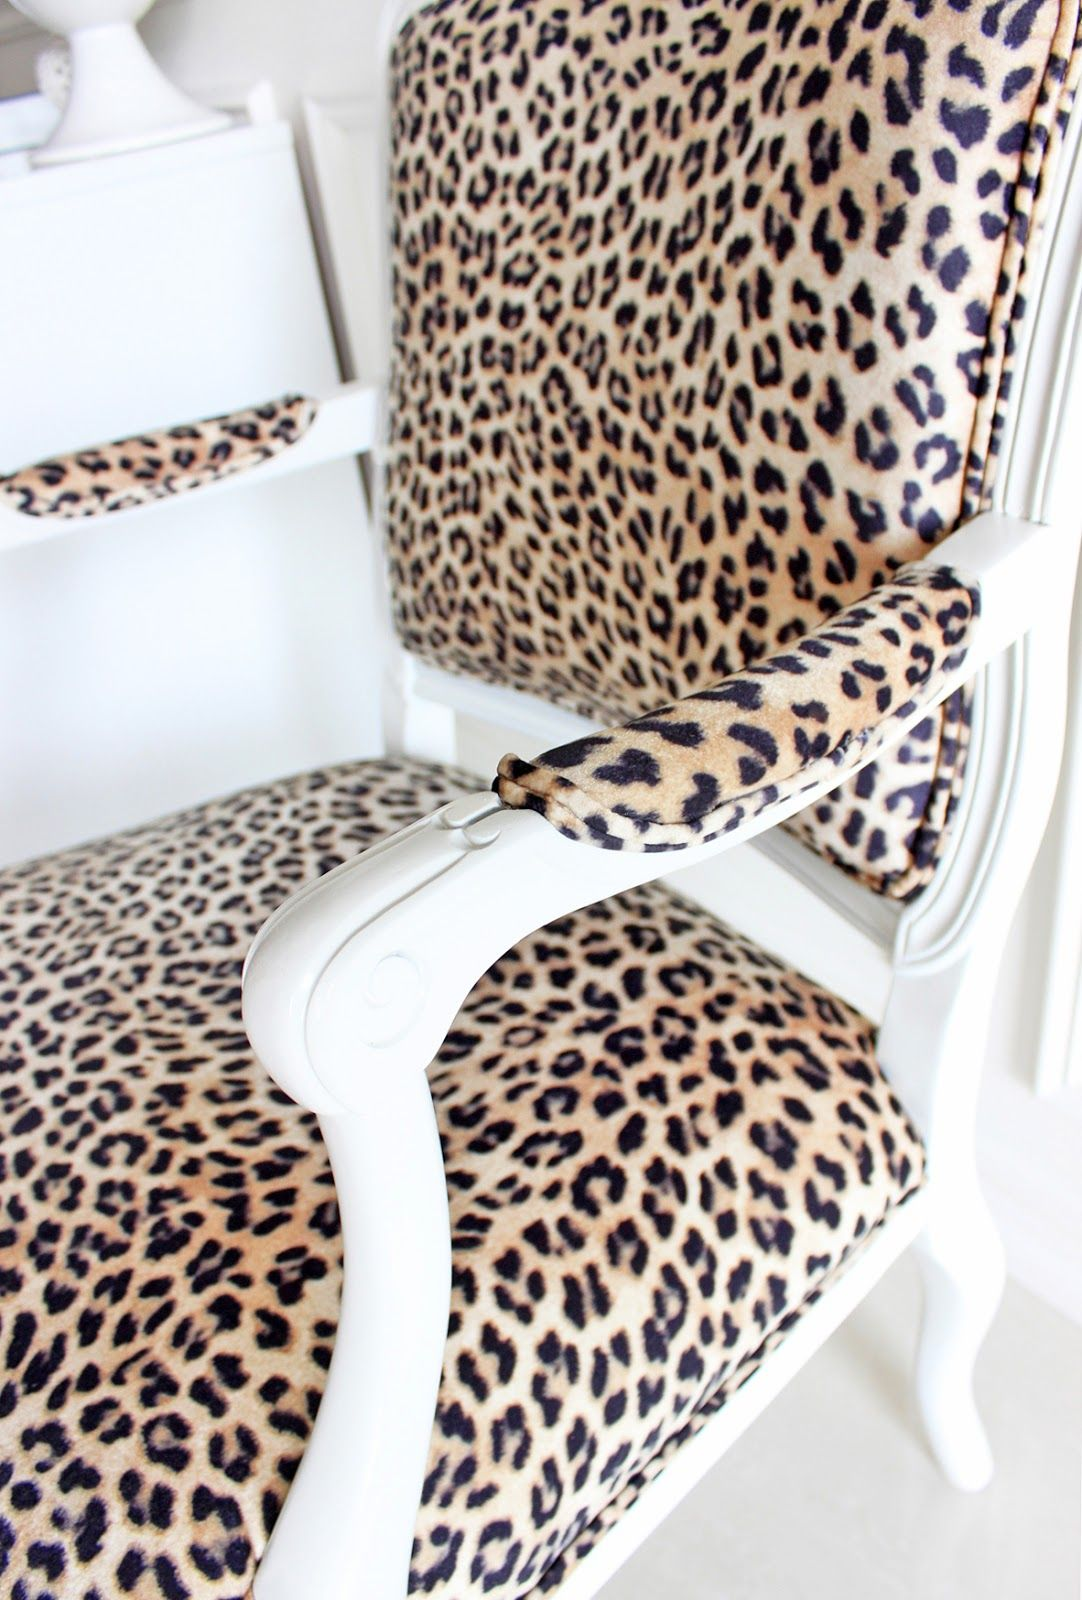 Leopard Print Sofa Appears Helena Marble Top Table French Louis Xv Chair In Upholstery Dream Deco